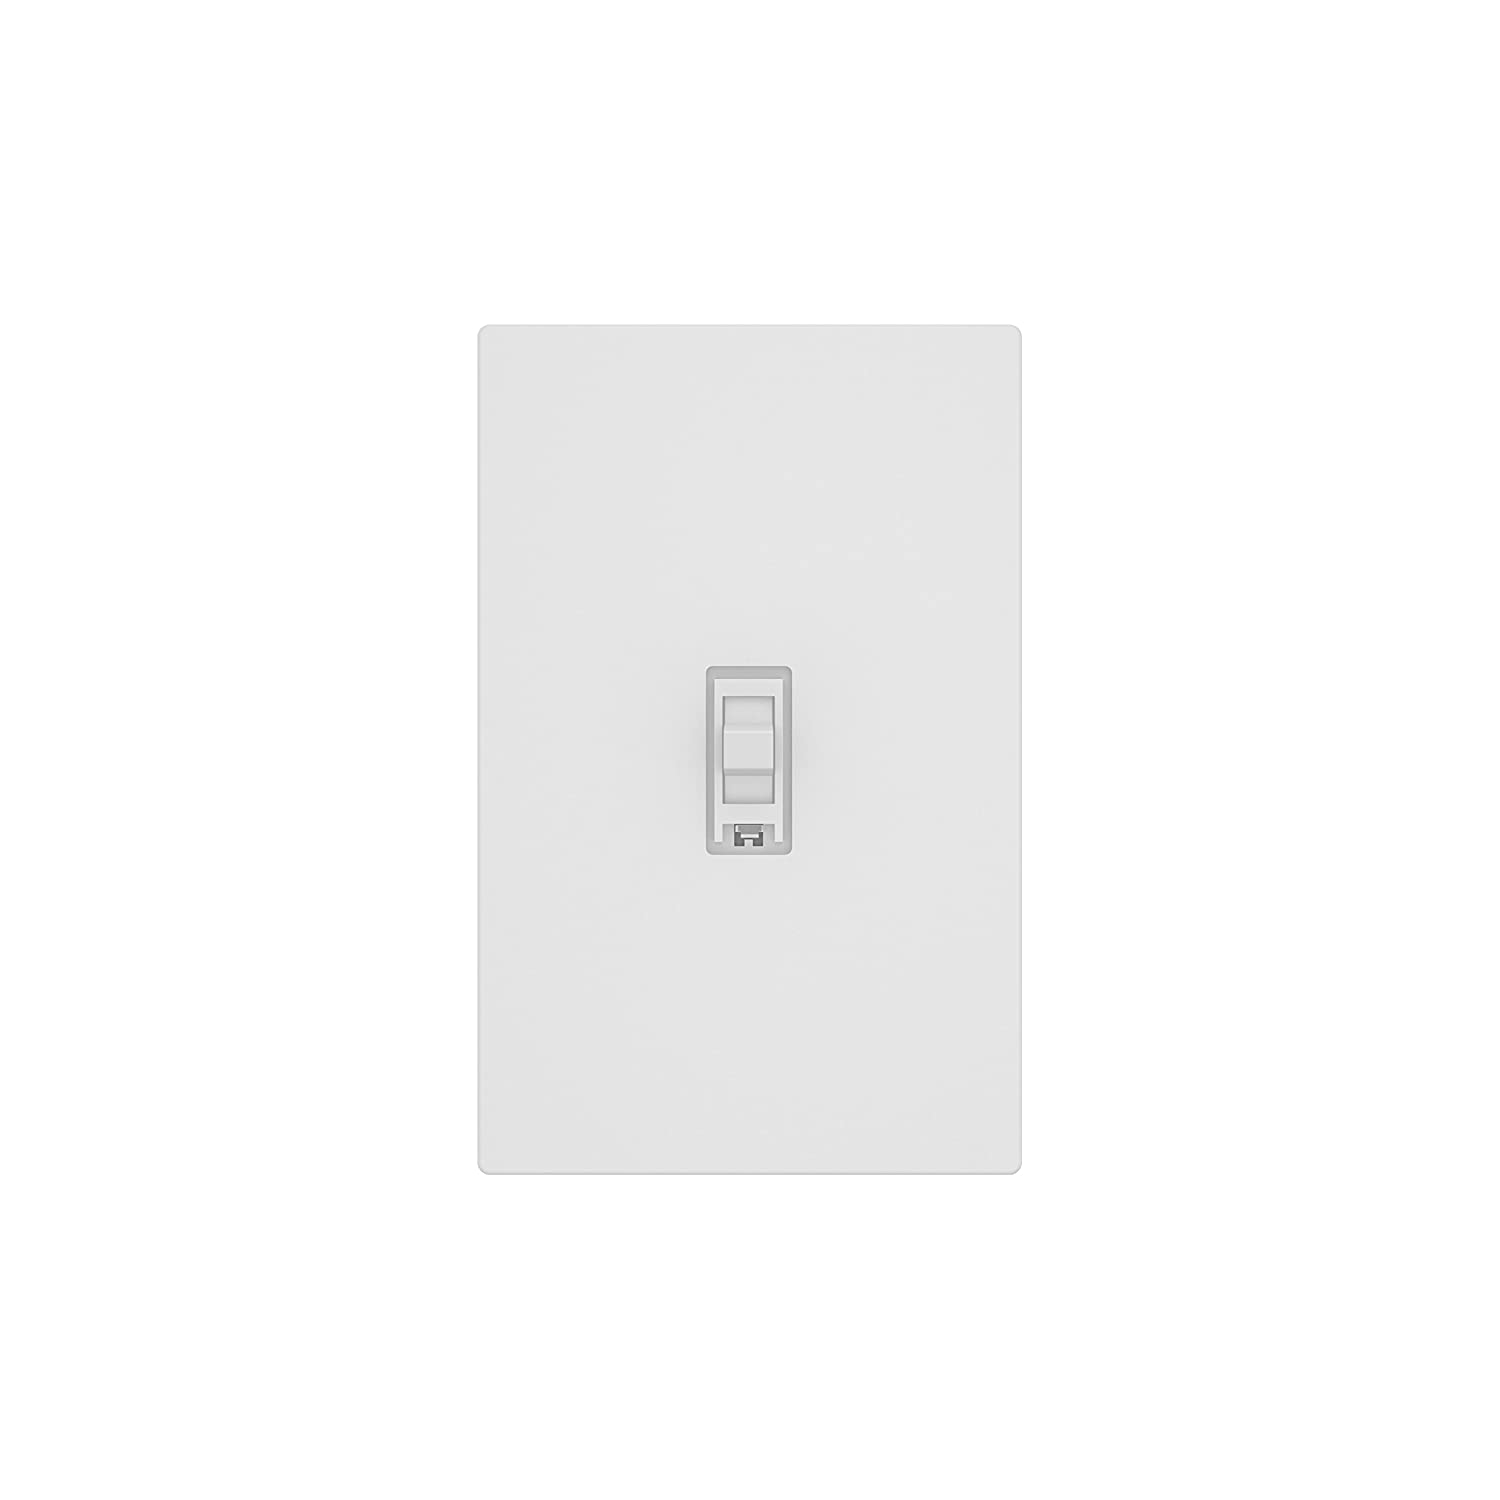 Insteon 2466SW ToggleLinc Relay Insteon Remote Control On/Off Switch  Non-Dimming, White - Wall Light Switches - Amazon.com